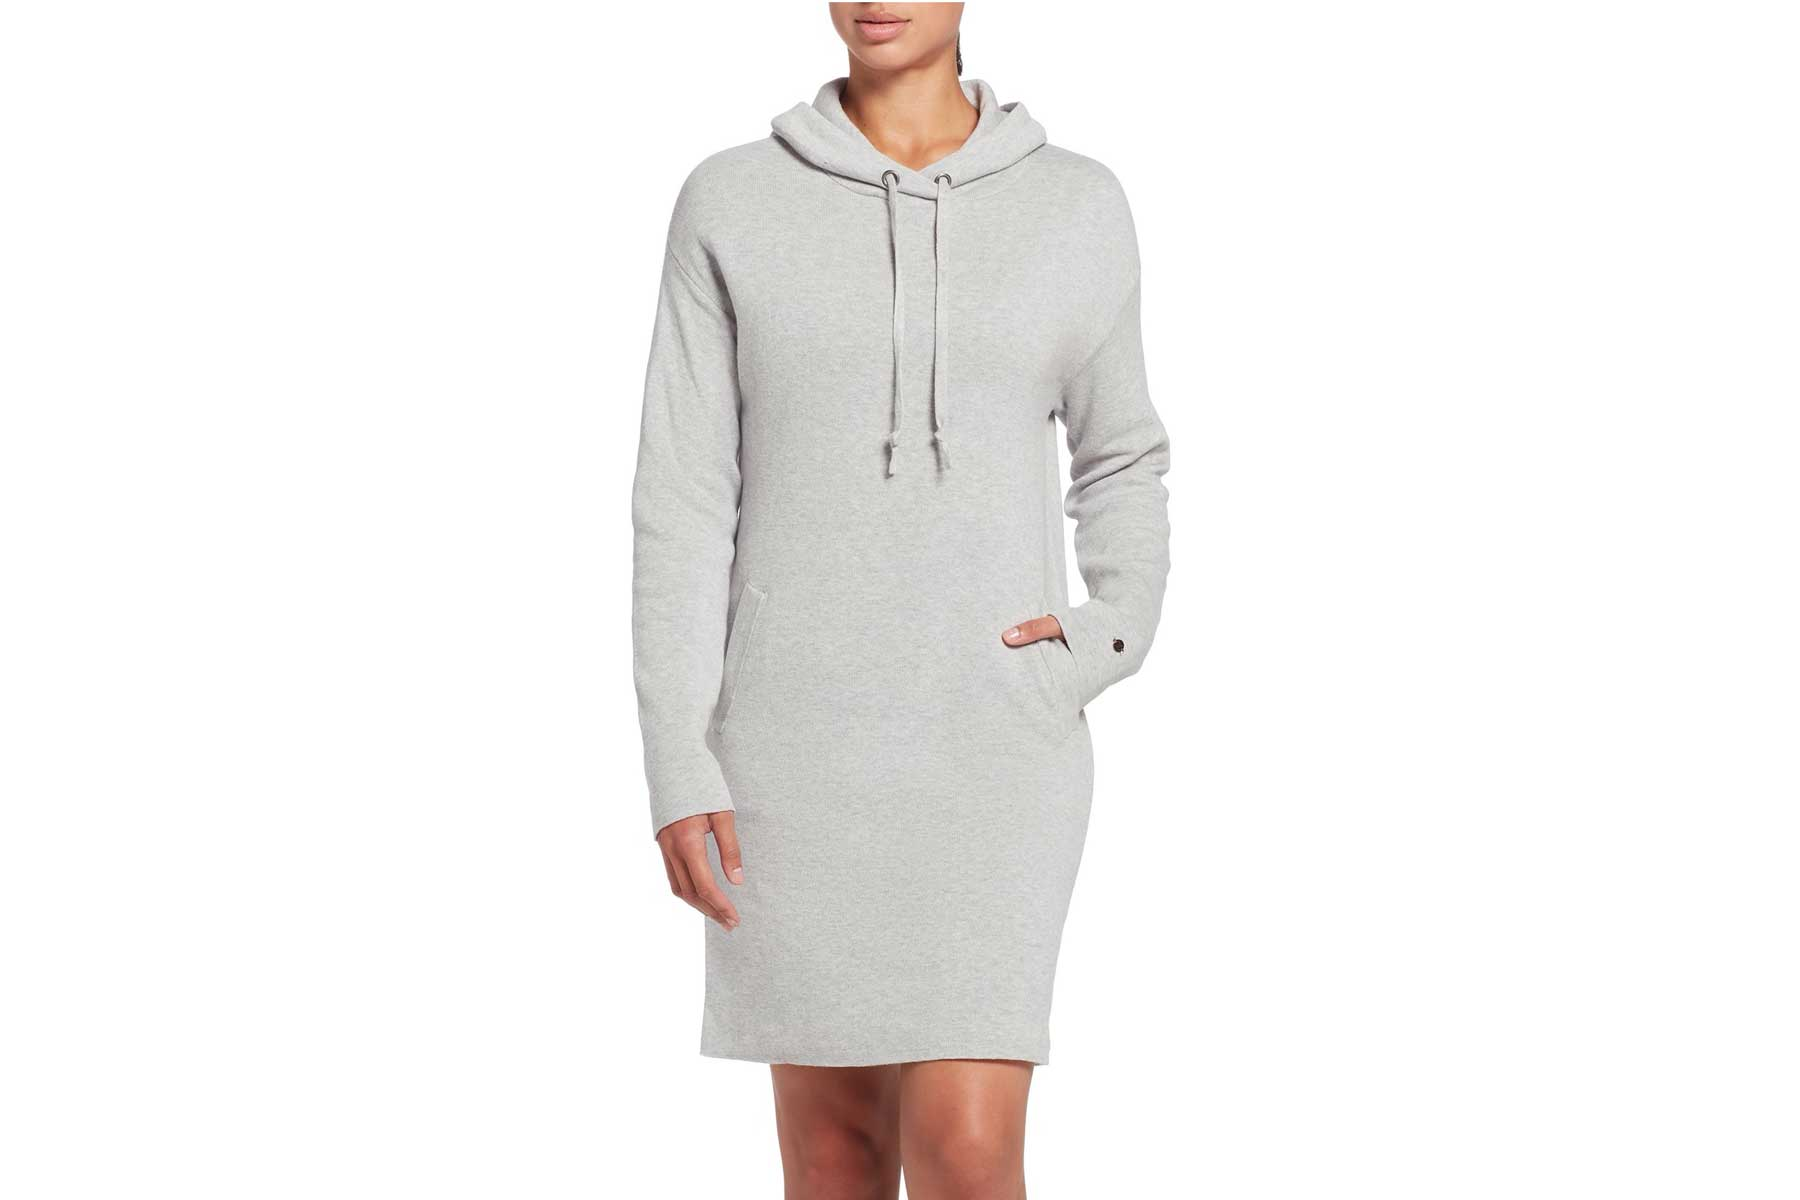 CALIA by Carrie Underwood Women's Journey Hooded Sweater Dress